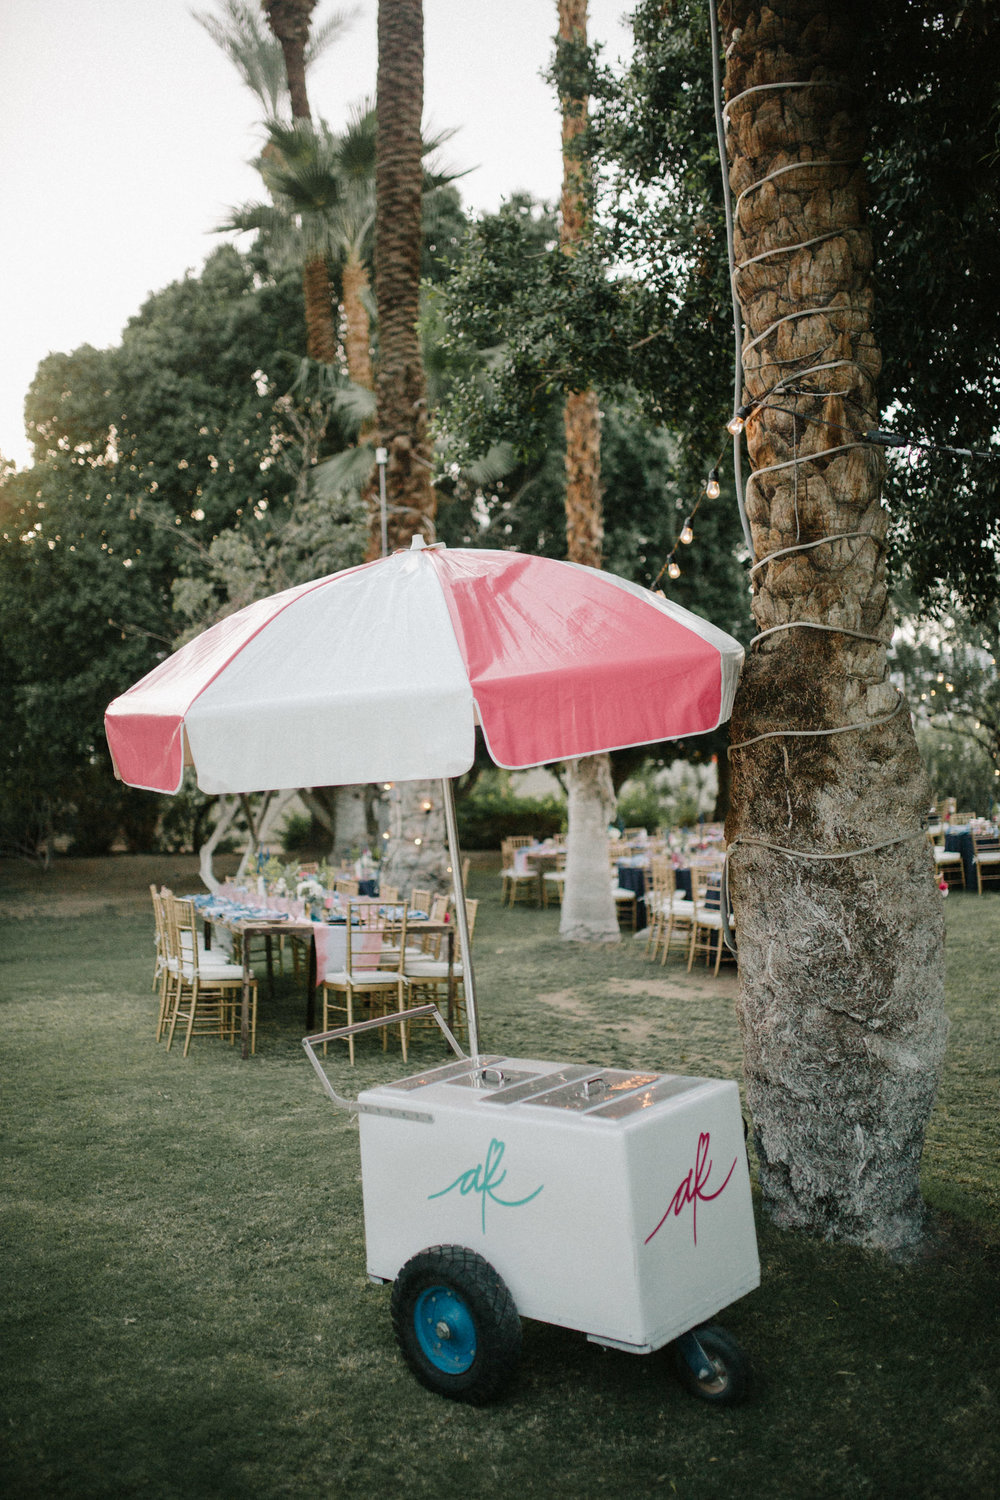 Palm_Springs_CA_wedding_alex_maxwell-70.jpg